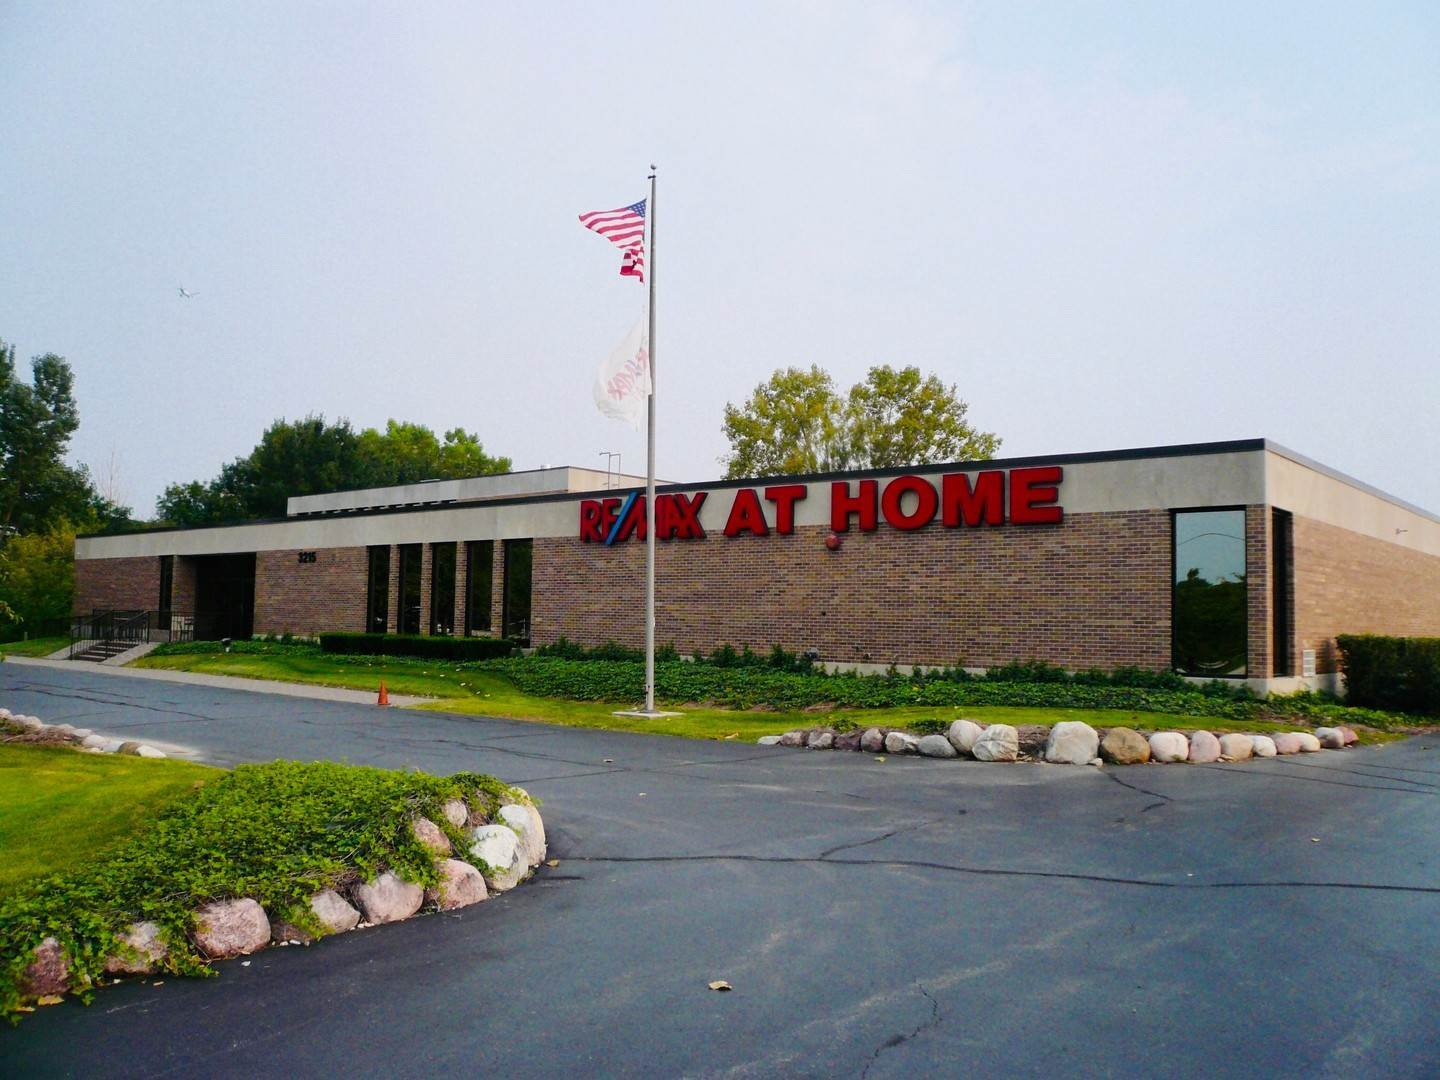 Comercial em 3215 Algonquin Road Rolling Meadows, Illinois 60008 Estados Unidos